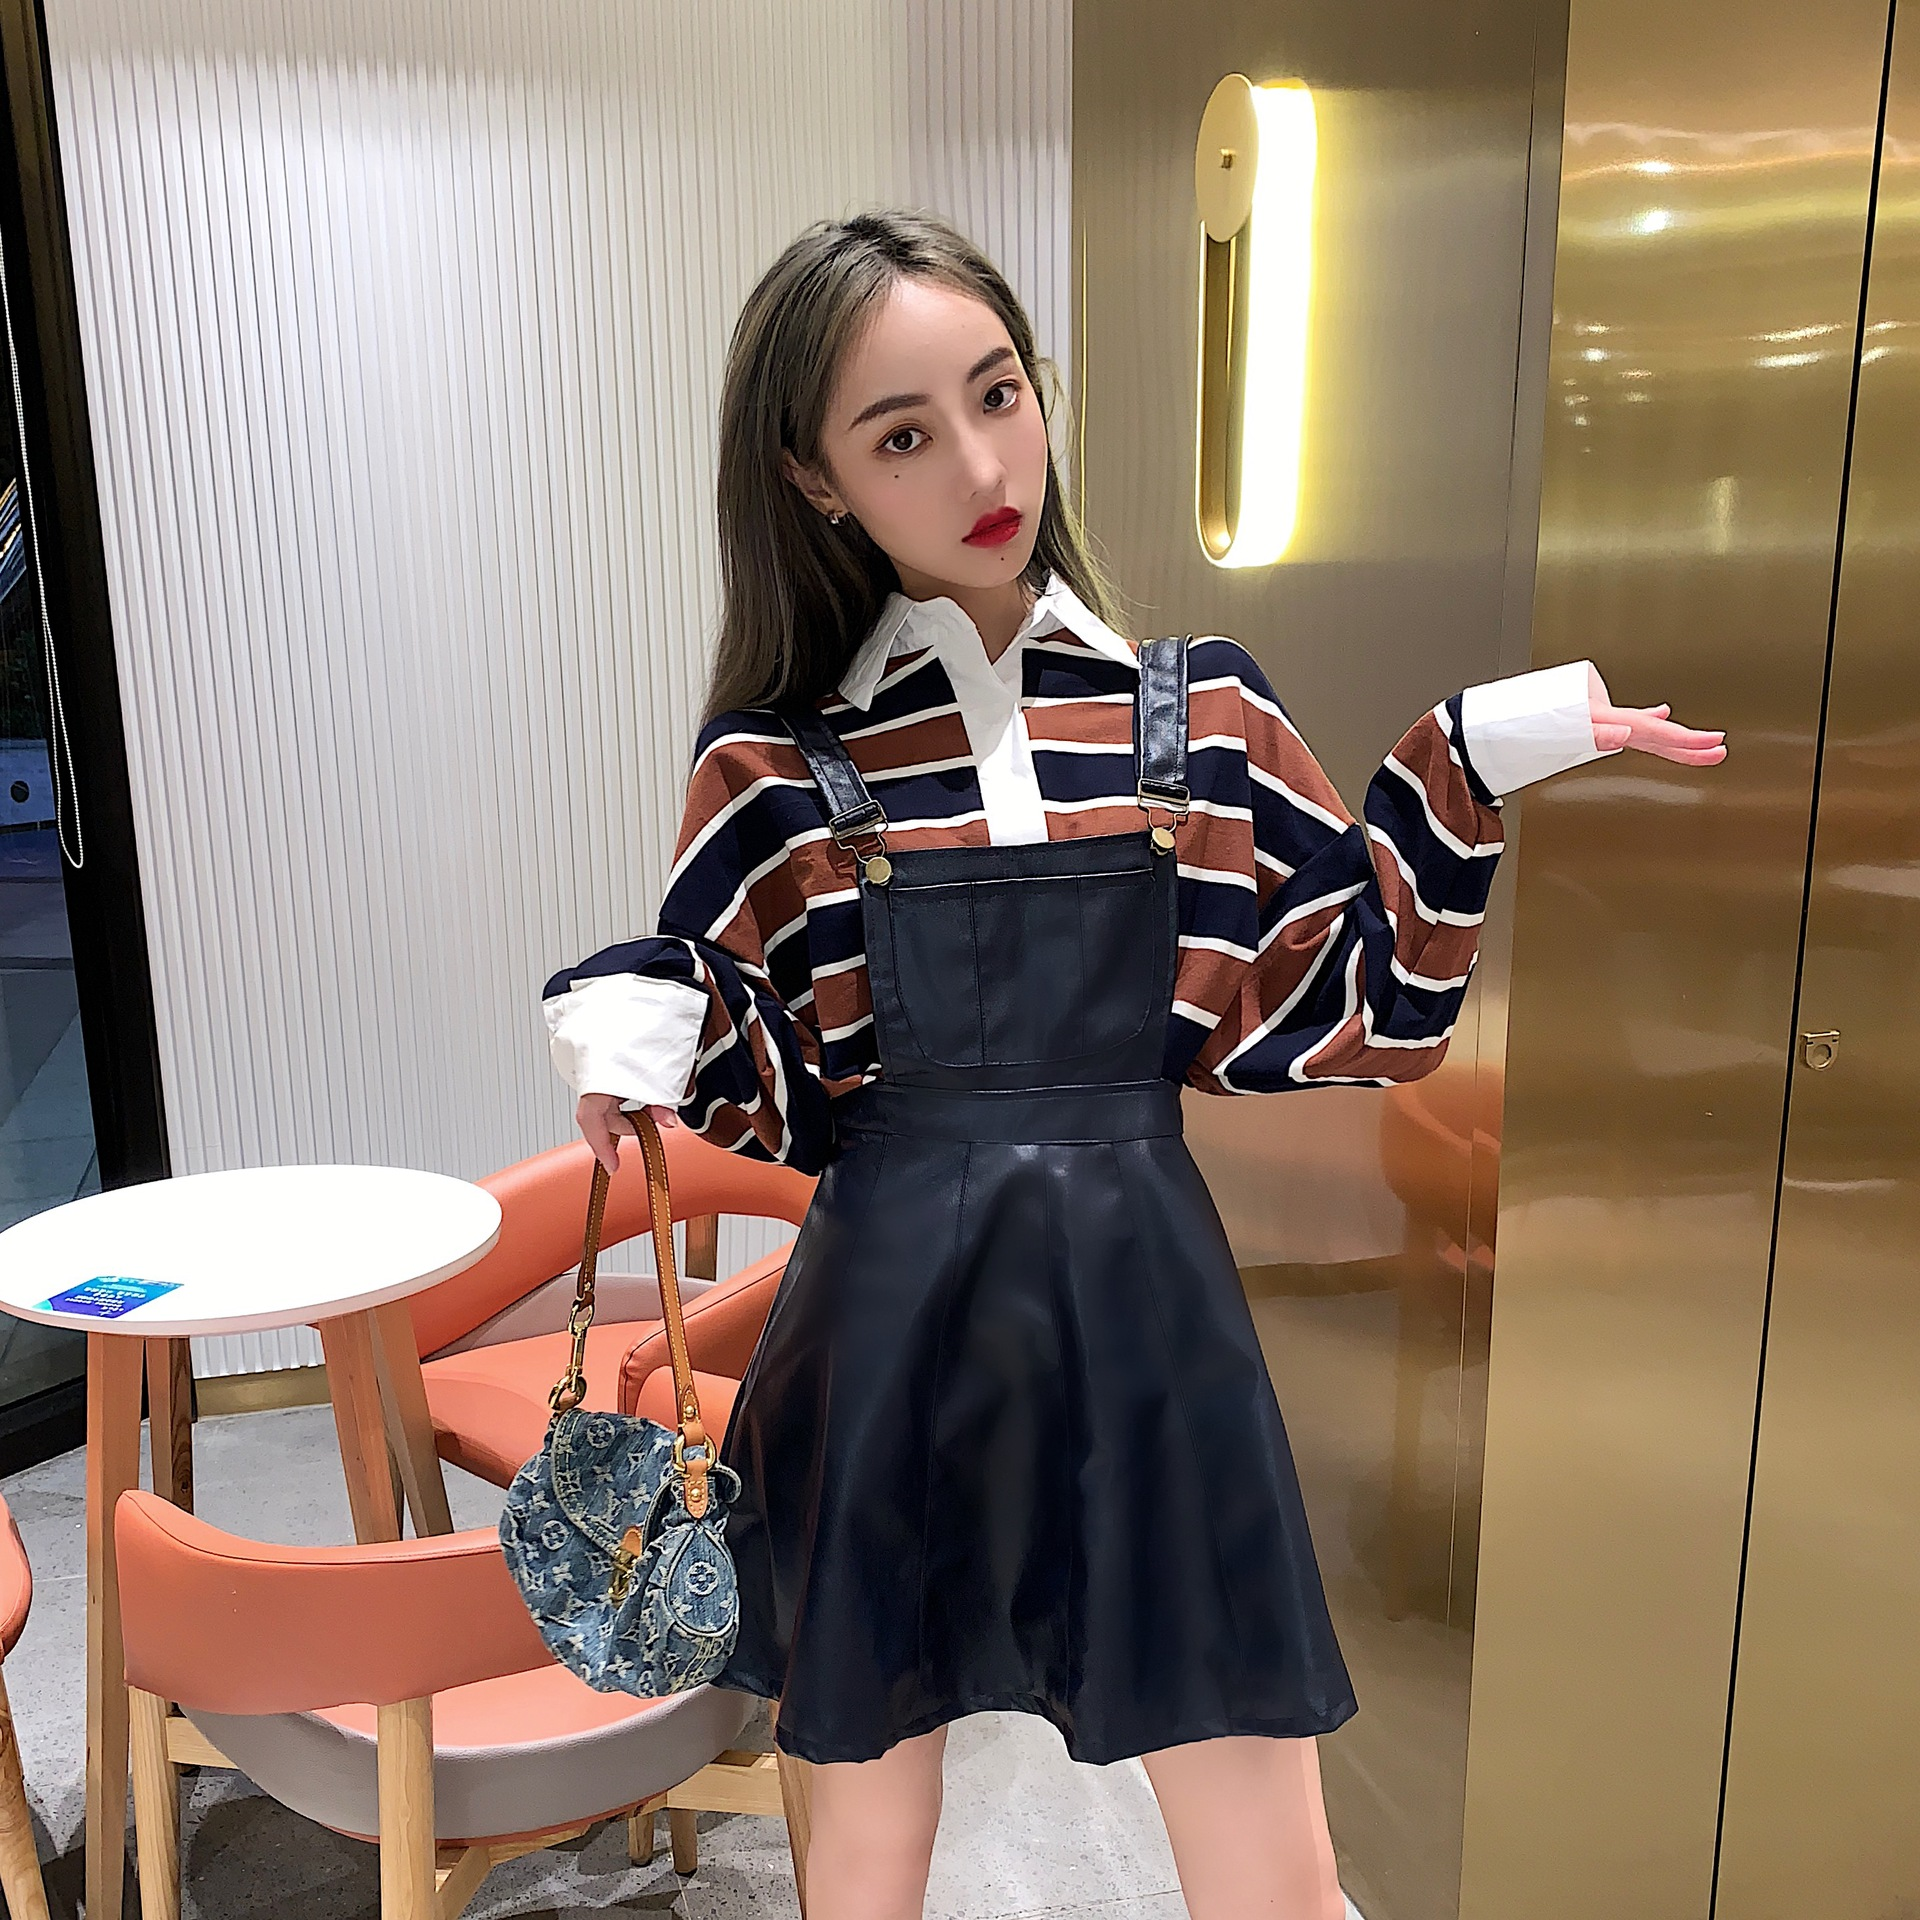 Photo Shoot 2019 Most New Style Laziness Stripes Long-sleeved Upper Garment + High-waisted Puffy Suspender Strap Leather Skirt S